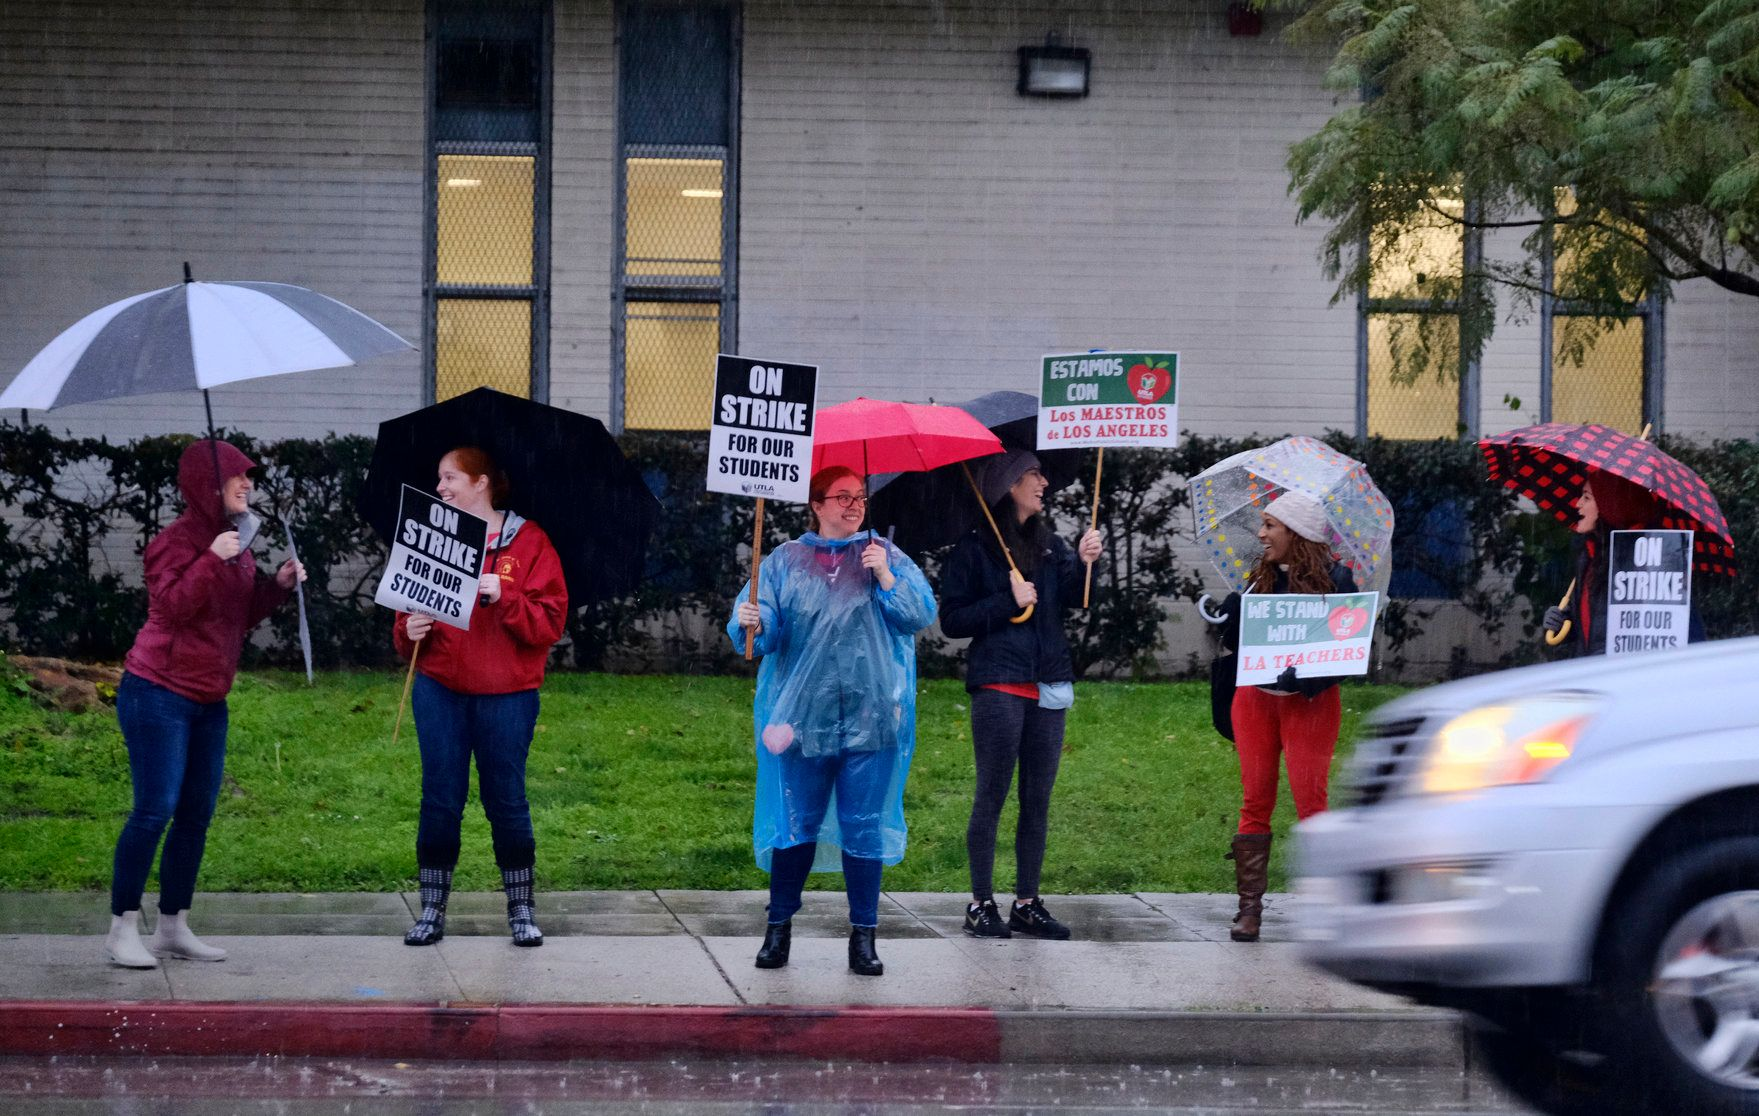 A driver honks the horn in support while passing teachers picketing during a city-wide teacher strike in front of Los Angeles High School on Monday, Jan. 14, 2019. Tens of thousands of Los Angeles teachers went on strike Monday after contentious contract negotiations failed in the nation's second-largest school district. (AP Photo/Richard Vogel)